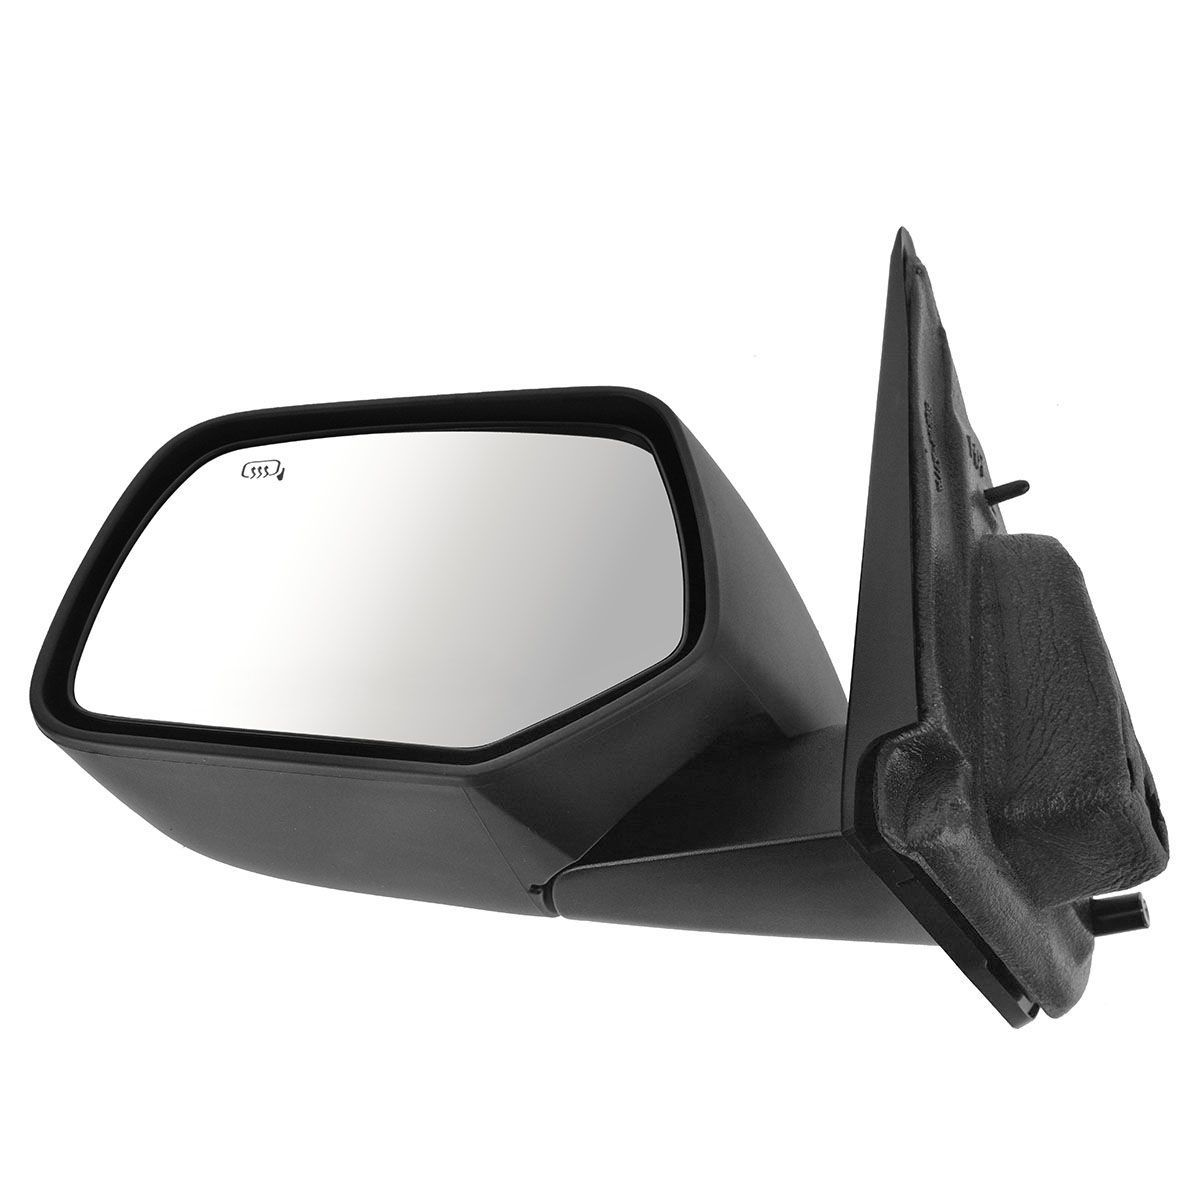 NEW LEFT SIDE POWER MIRROR MANUAL FOLDING FITS 1999-2003 MAZDA PROTEGE MA1320130